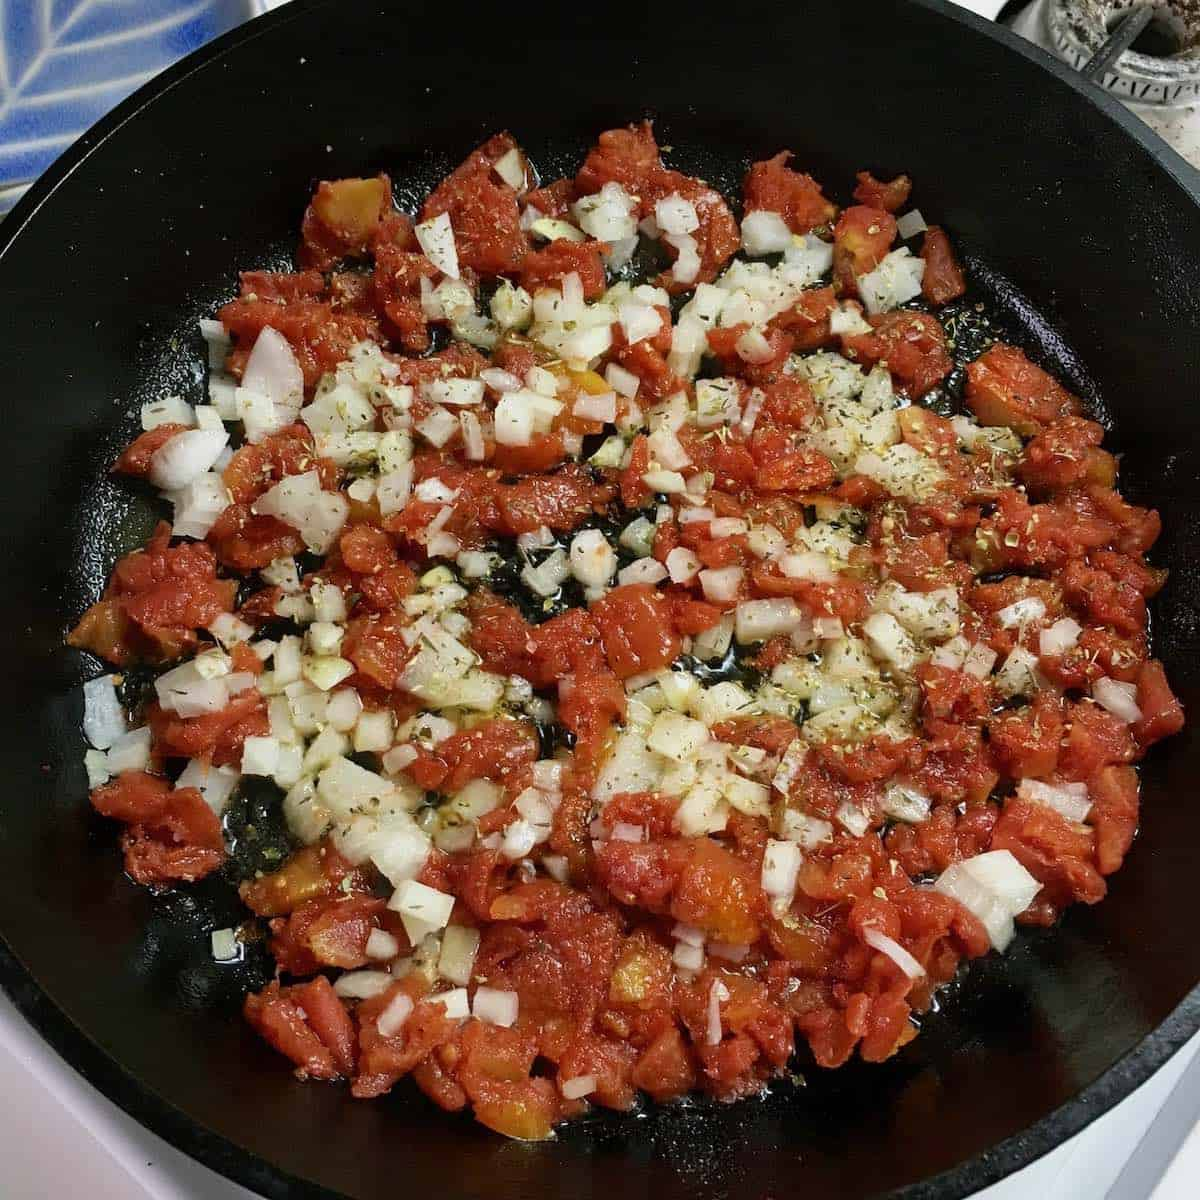 cooked tomatoes and onions in cast iron pan